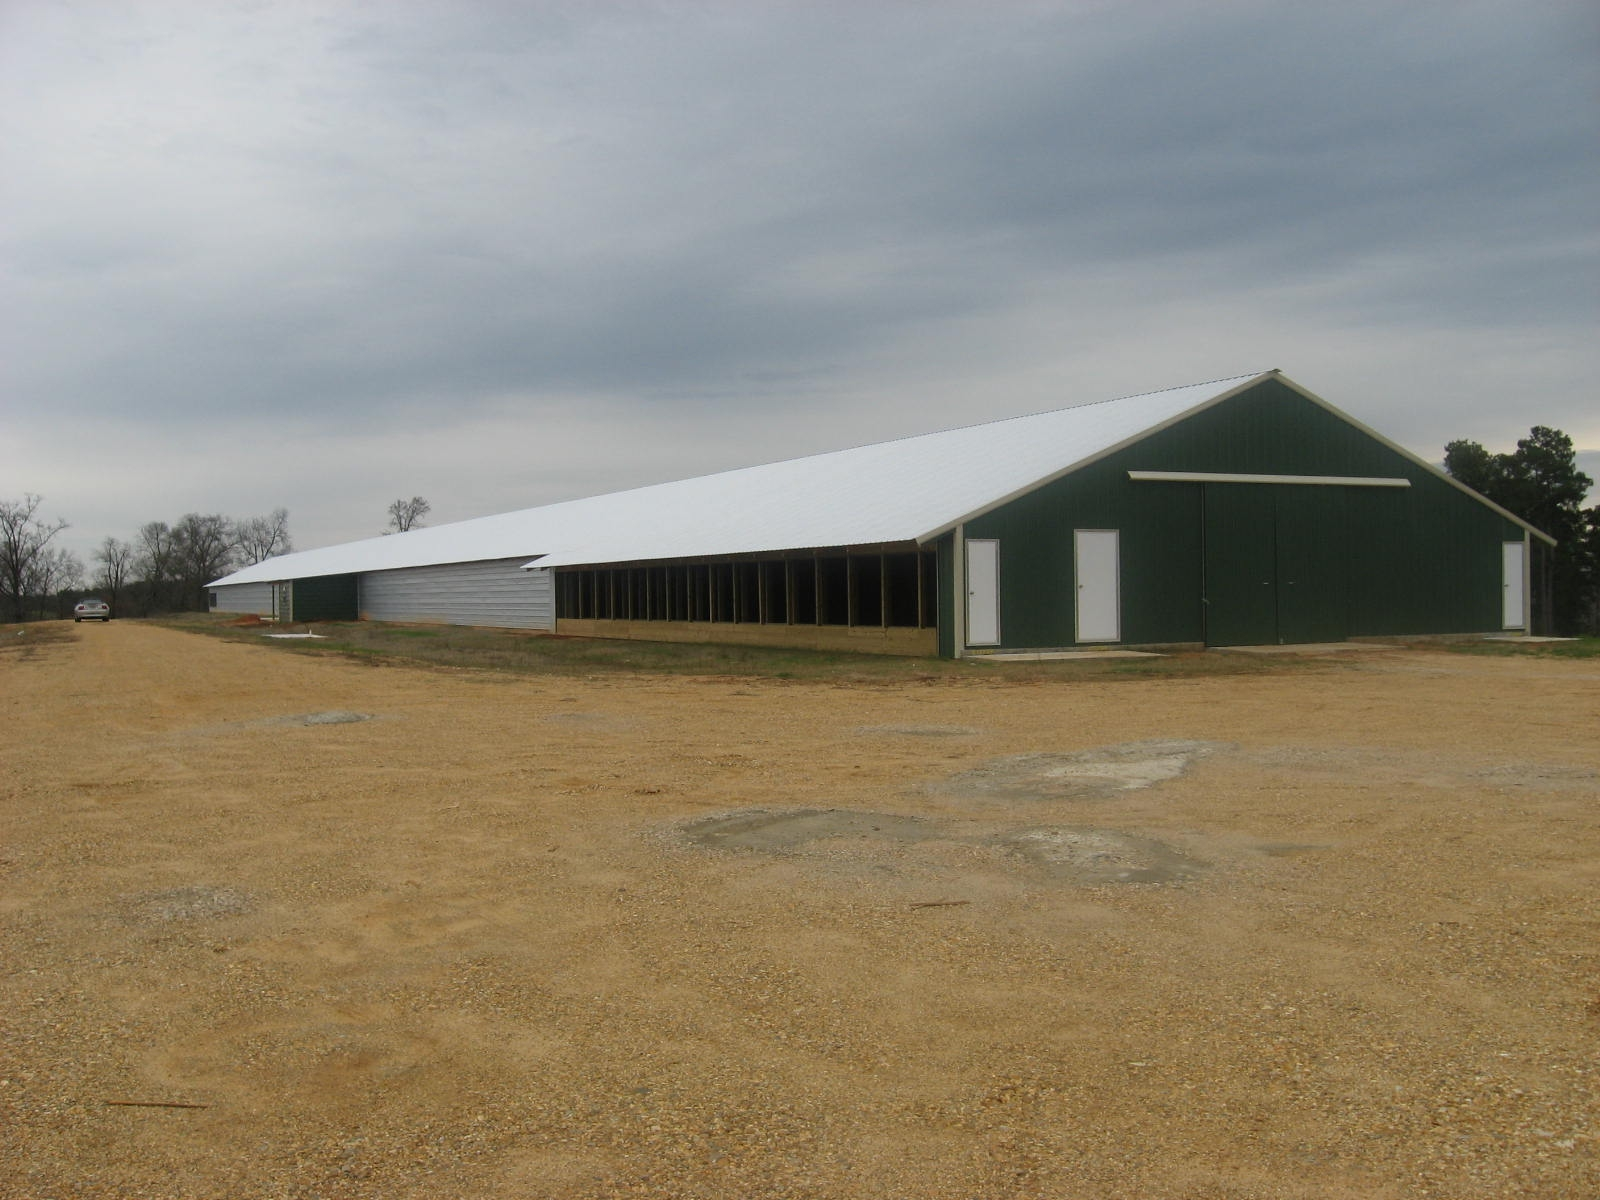 New Poultry Houses at Hill Farm Research Station